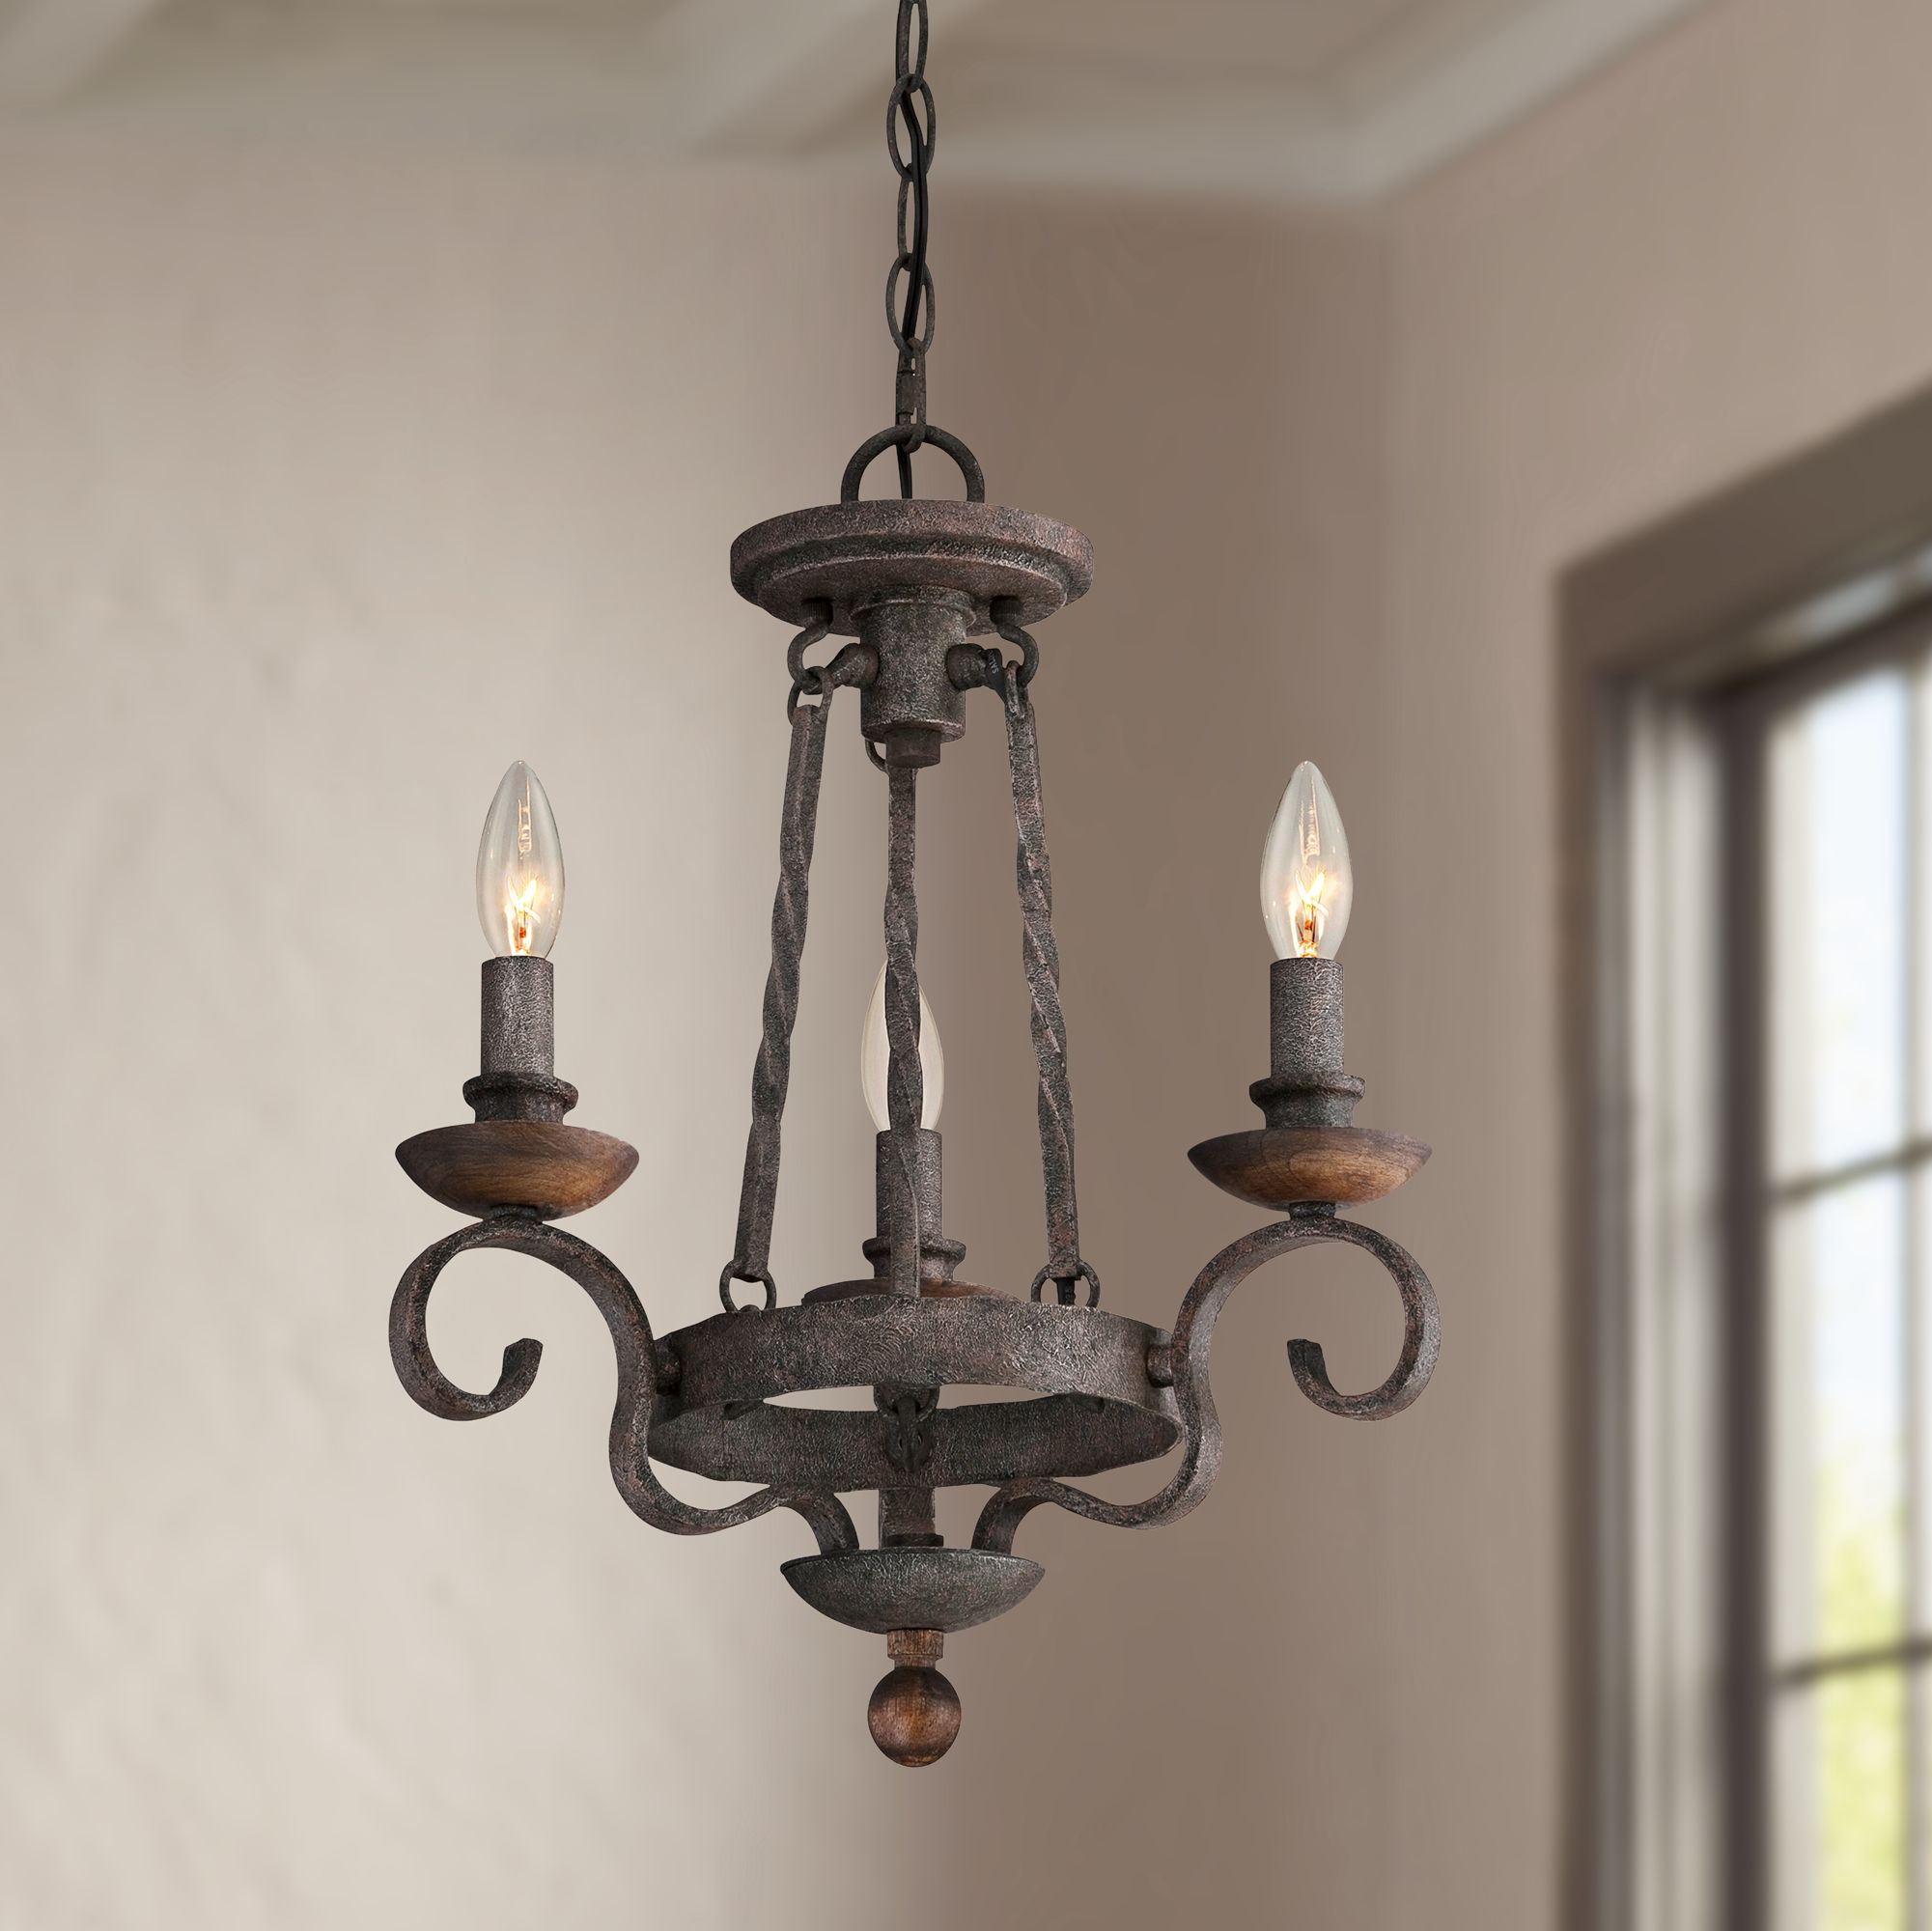 Black rustic chandelier Rustic Lighting Fixture Quoizel Noble 15 Lamps Plus Rustic Chandeliers Lodgeinspired And Natural Styles Lamps Plus